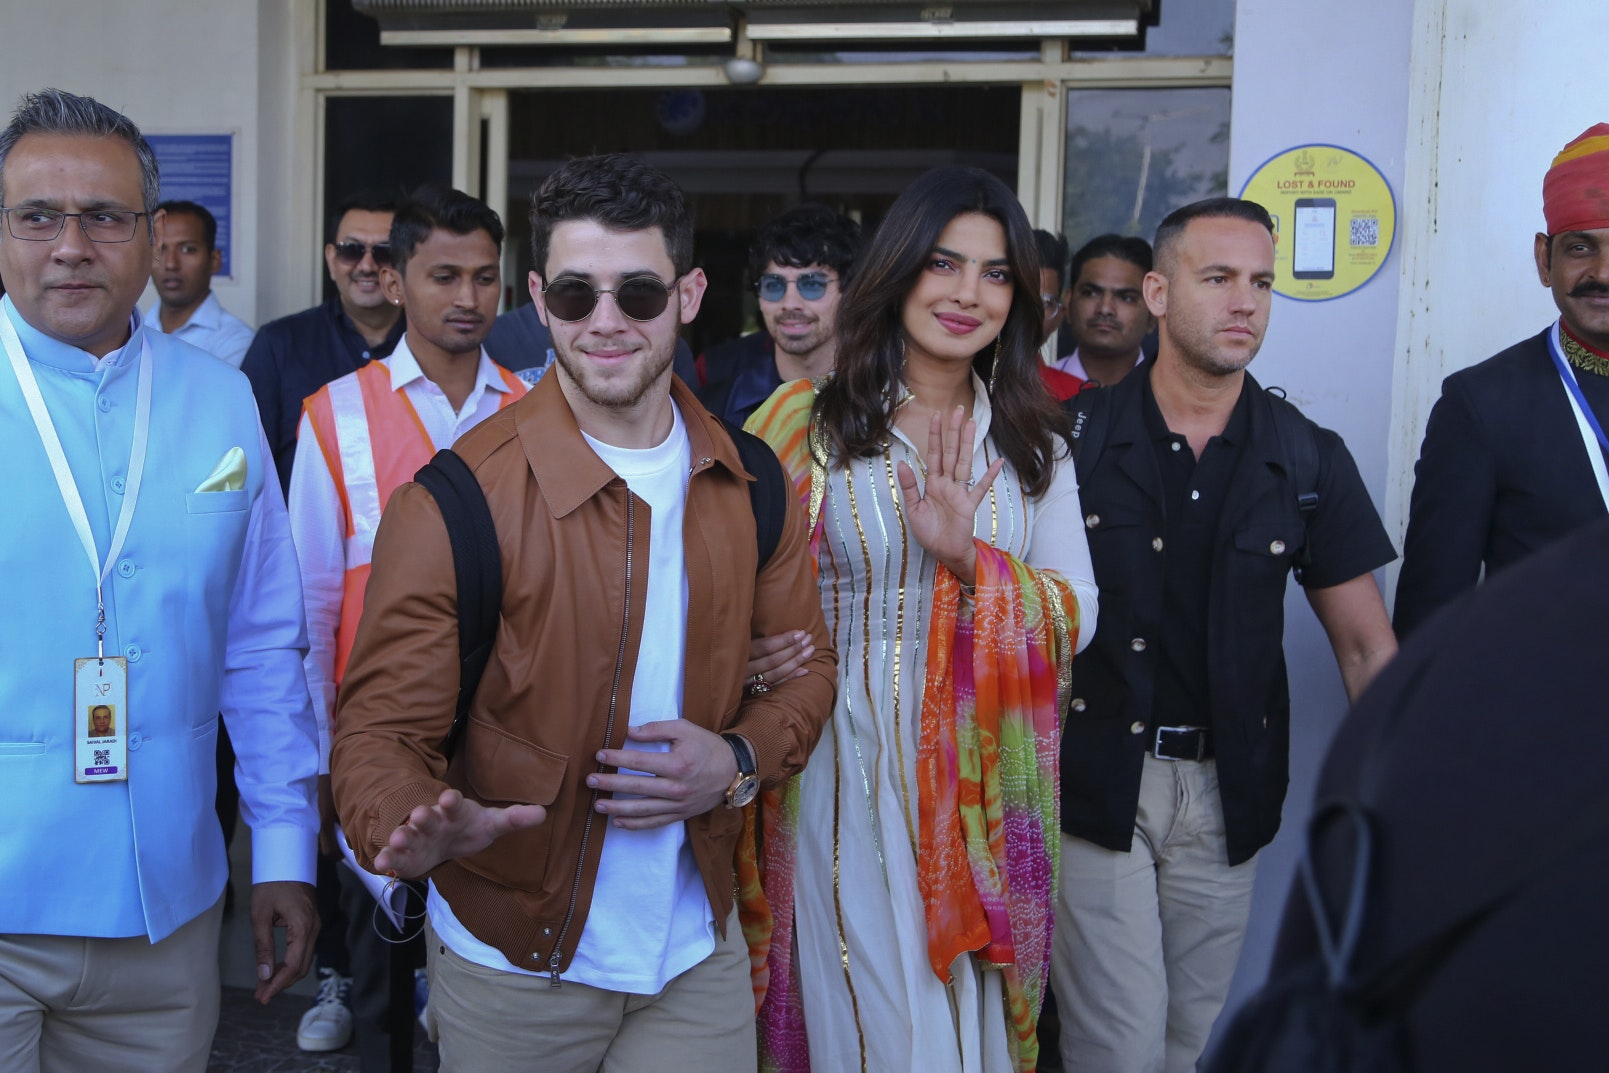 Priyanka Chopra and Nick Jonas share photos of their wedding festivities